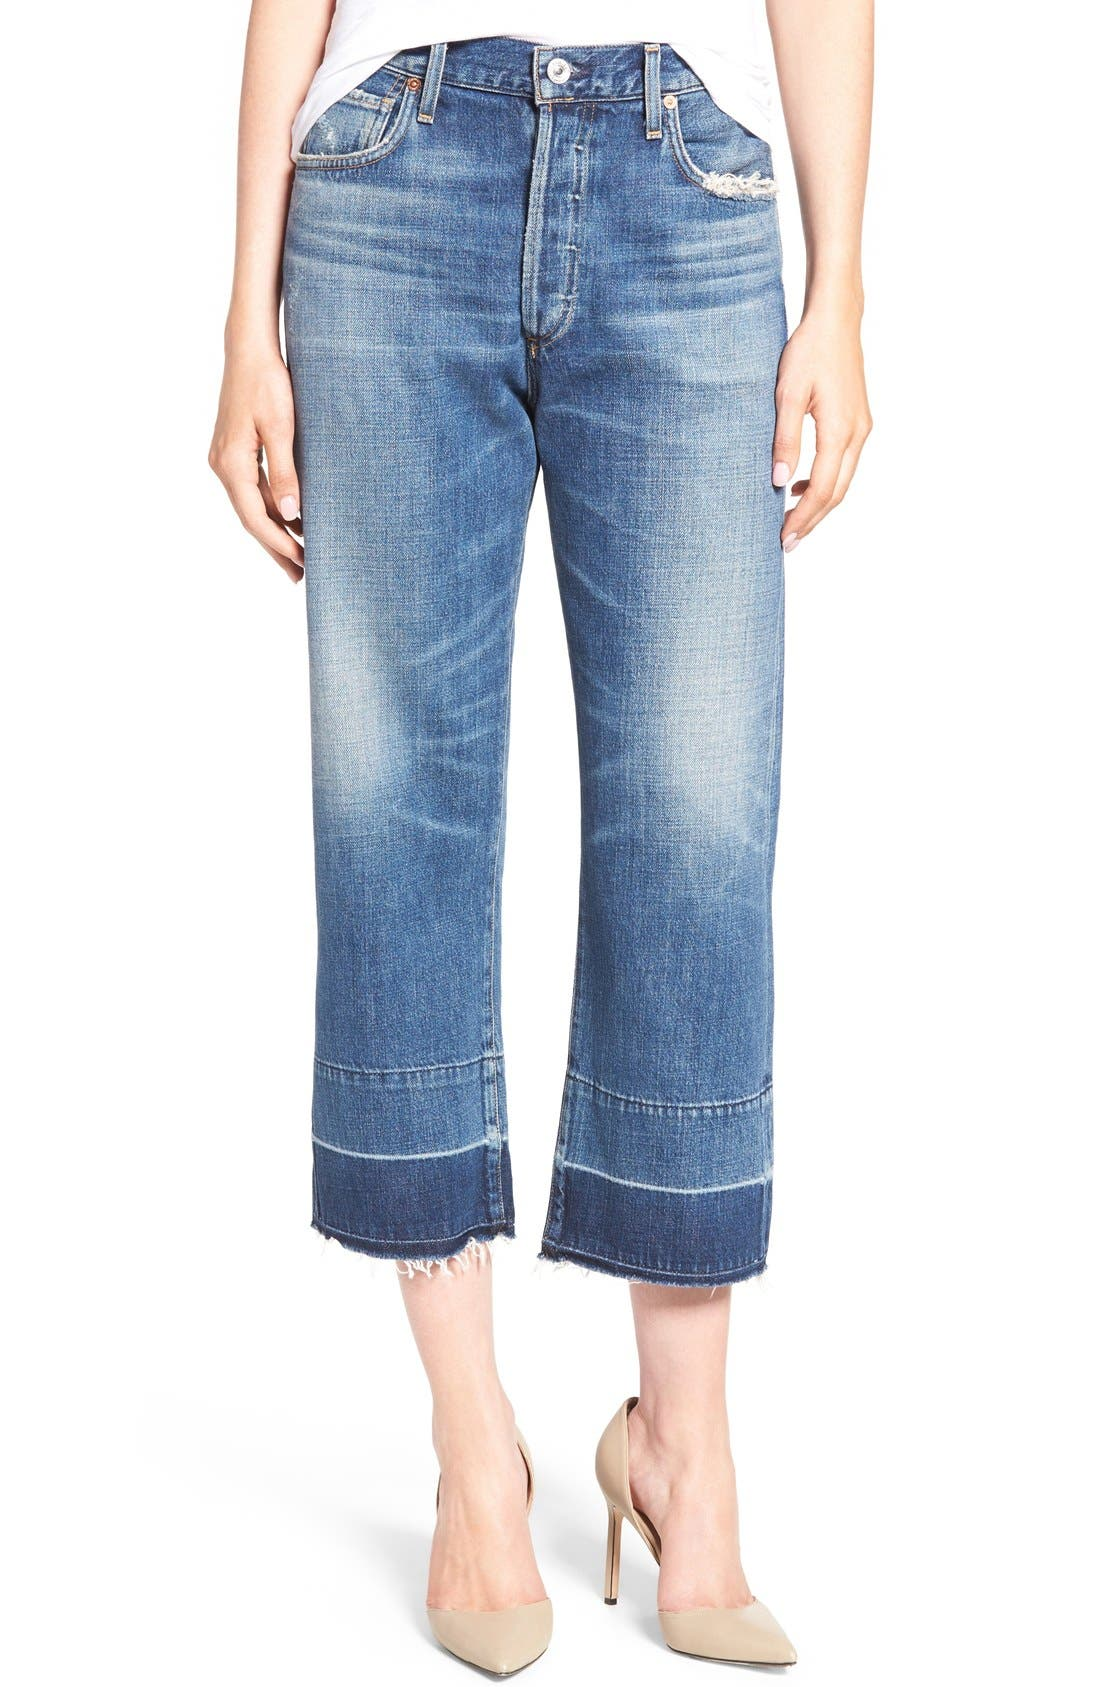 Main Image - Citizens of Humanity Cora High Waist Released Hem Boyfriend Jeans (Fade Out)